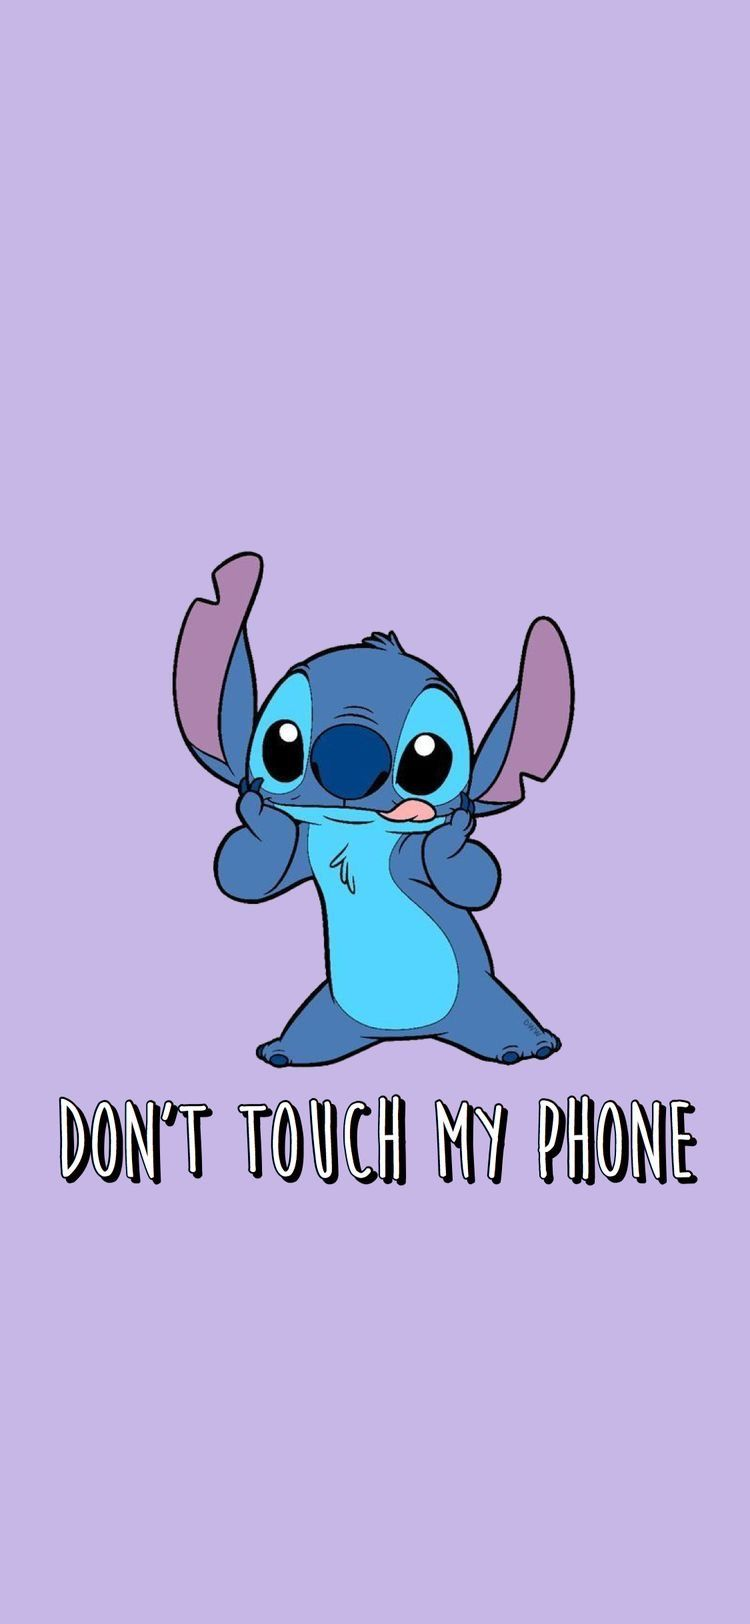 Cute Stitch Wallpaper Dont Touch My Phone Wallpapers Funny Phone Wallpaper Disney Phone Wallpaper